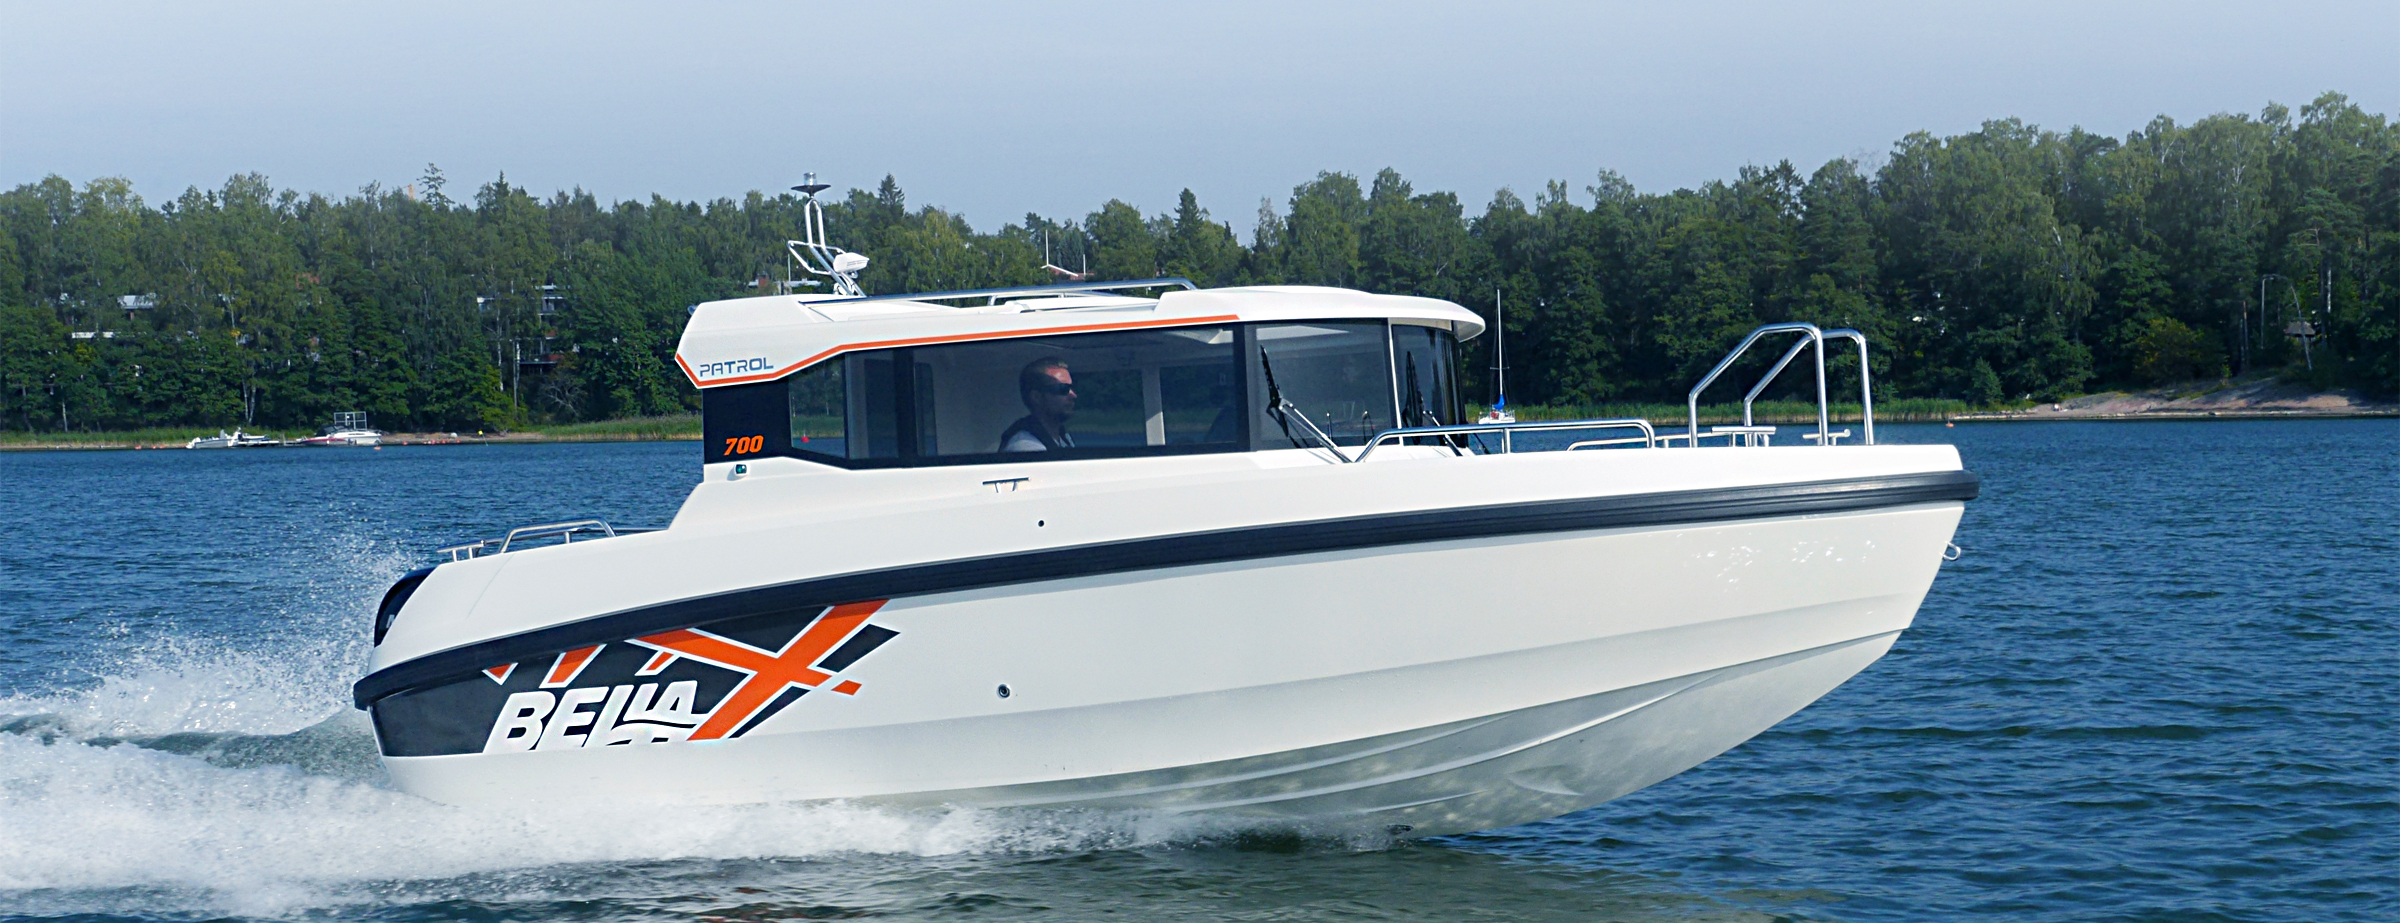 search cabins classic ships van pinterest power boating by catamaran on boat cabin searching peter cruisers pin boats cruiser yachts